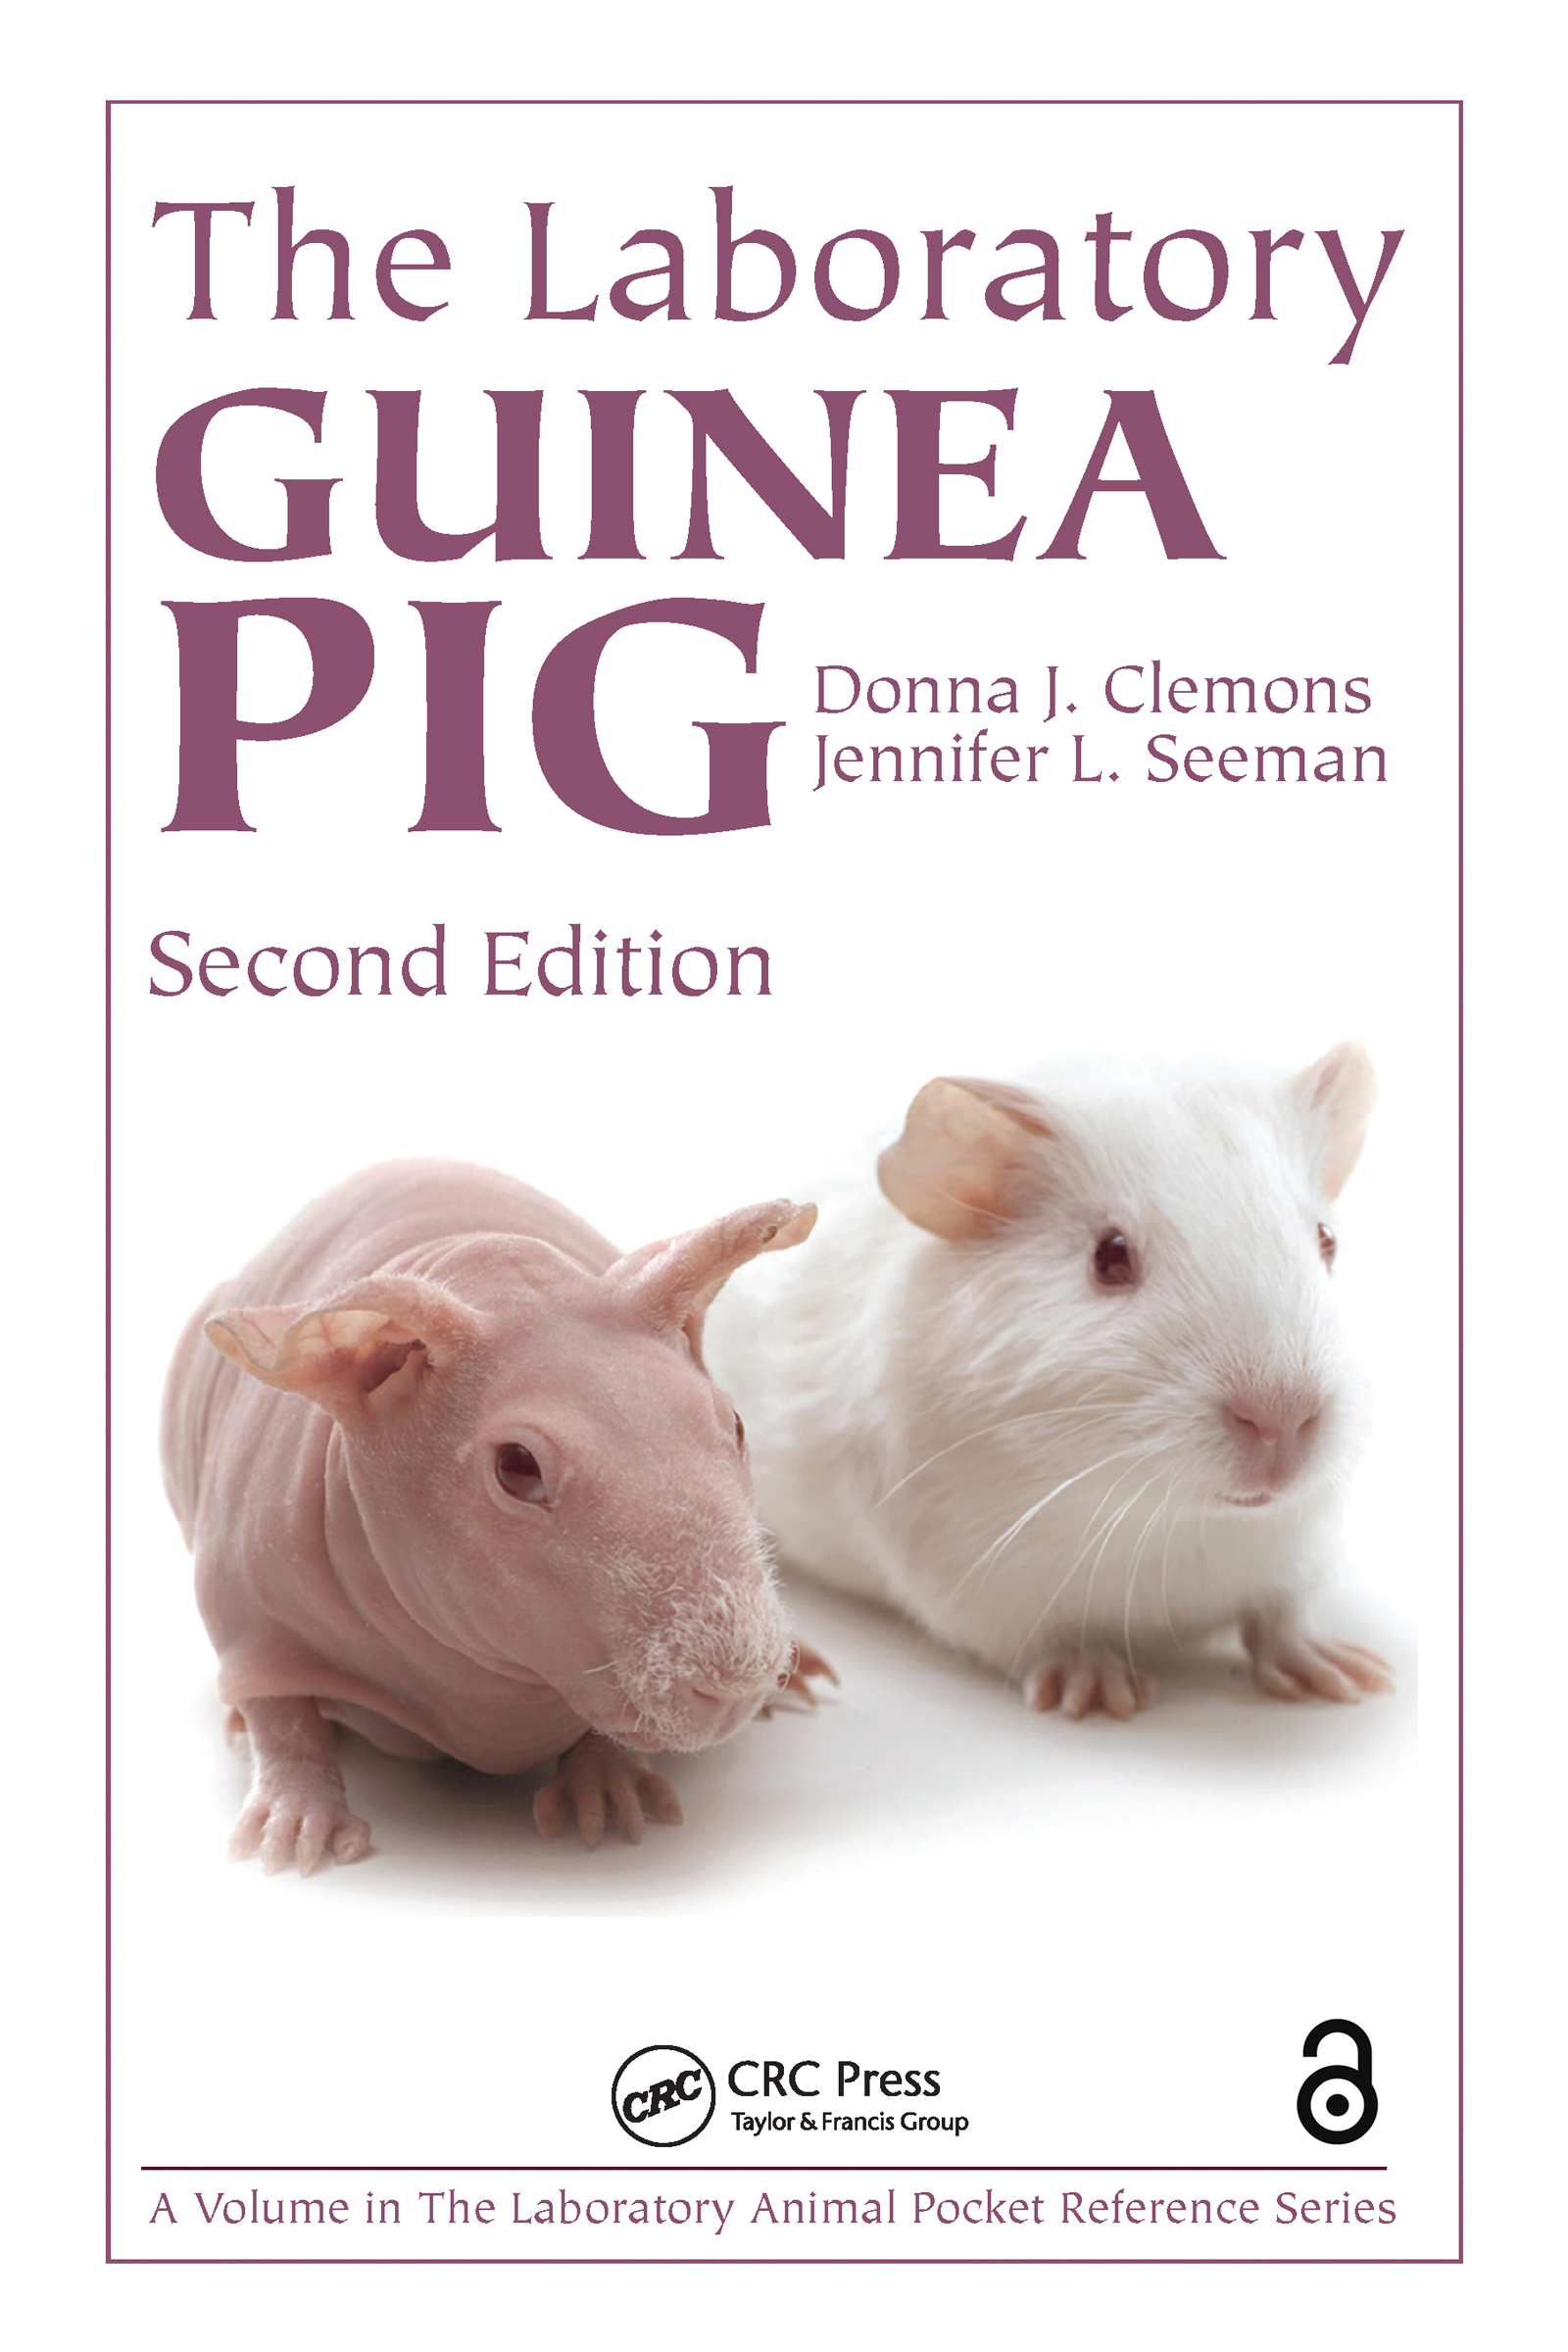 The Laboratory Guinea Pig, Second Edition: 2nd Edition (Paperback) book cover